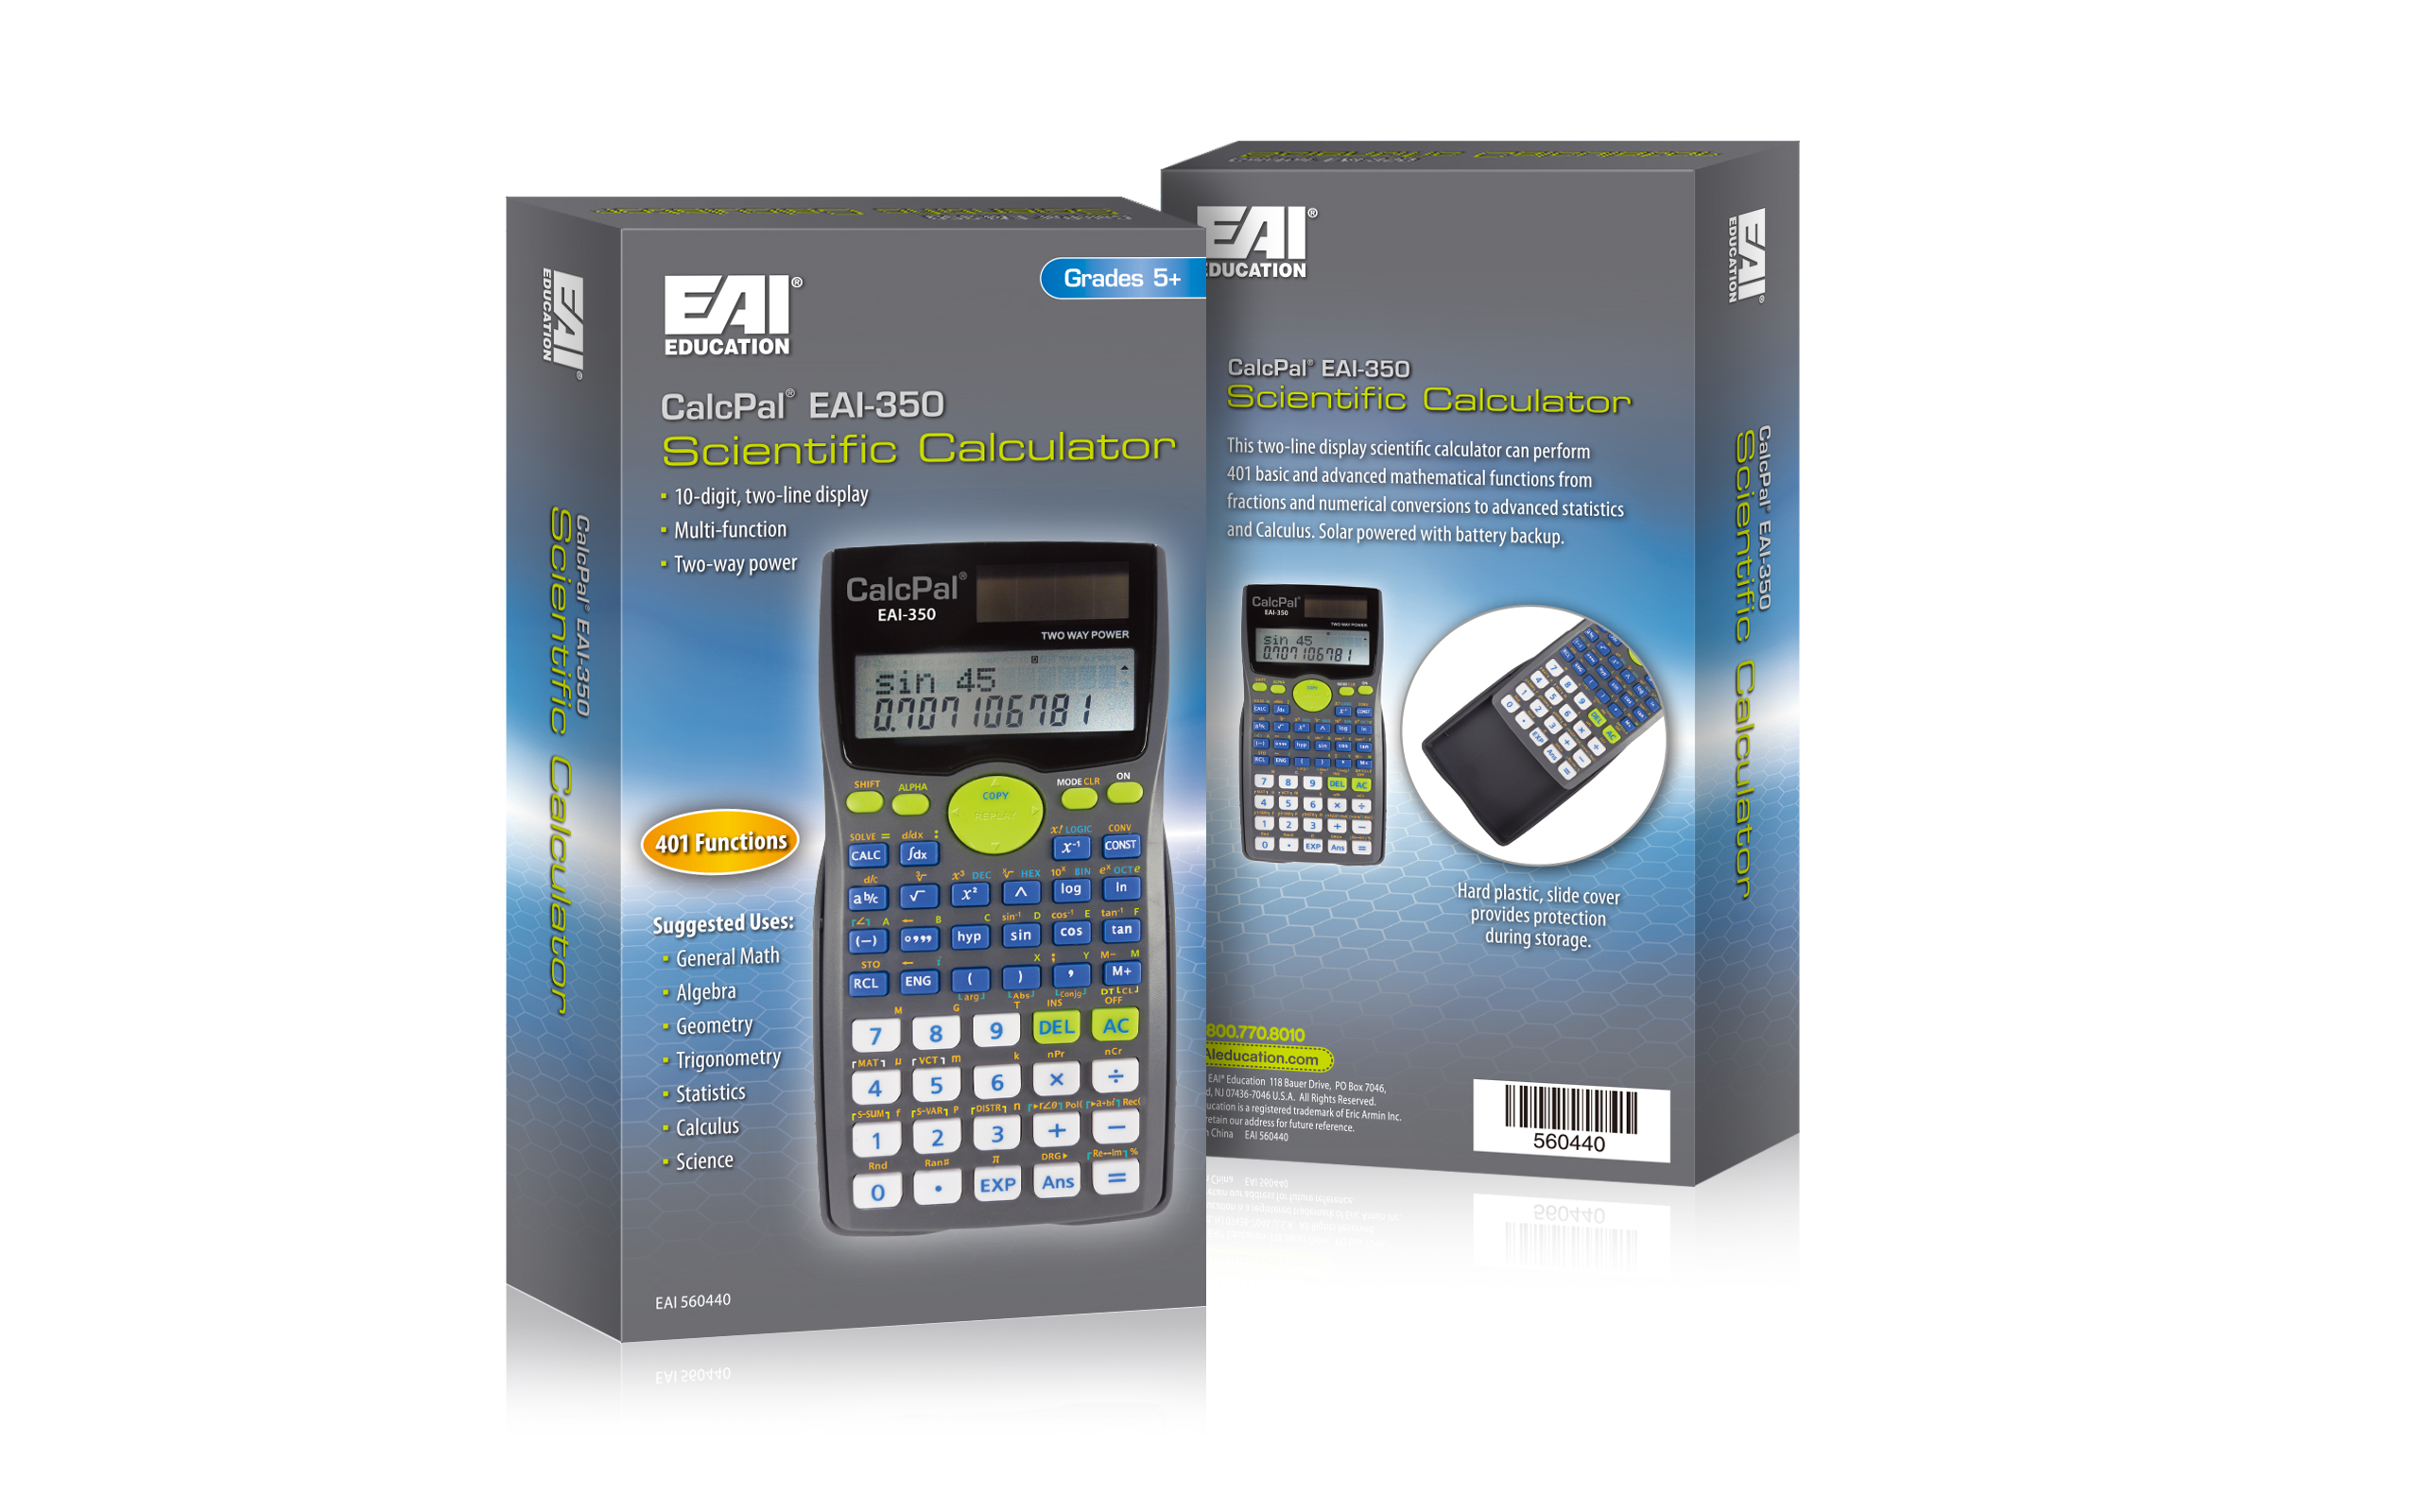 Calculator Package Design